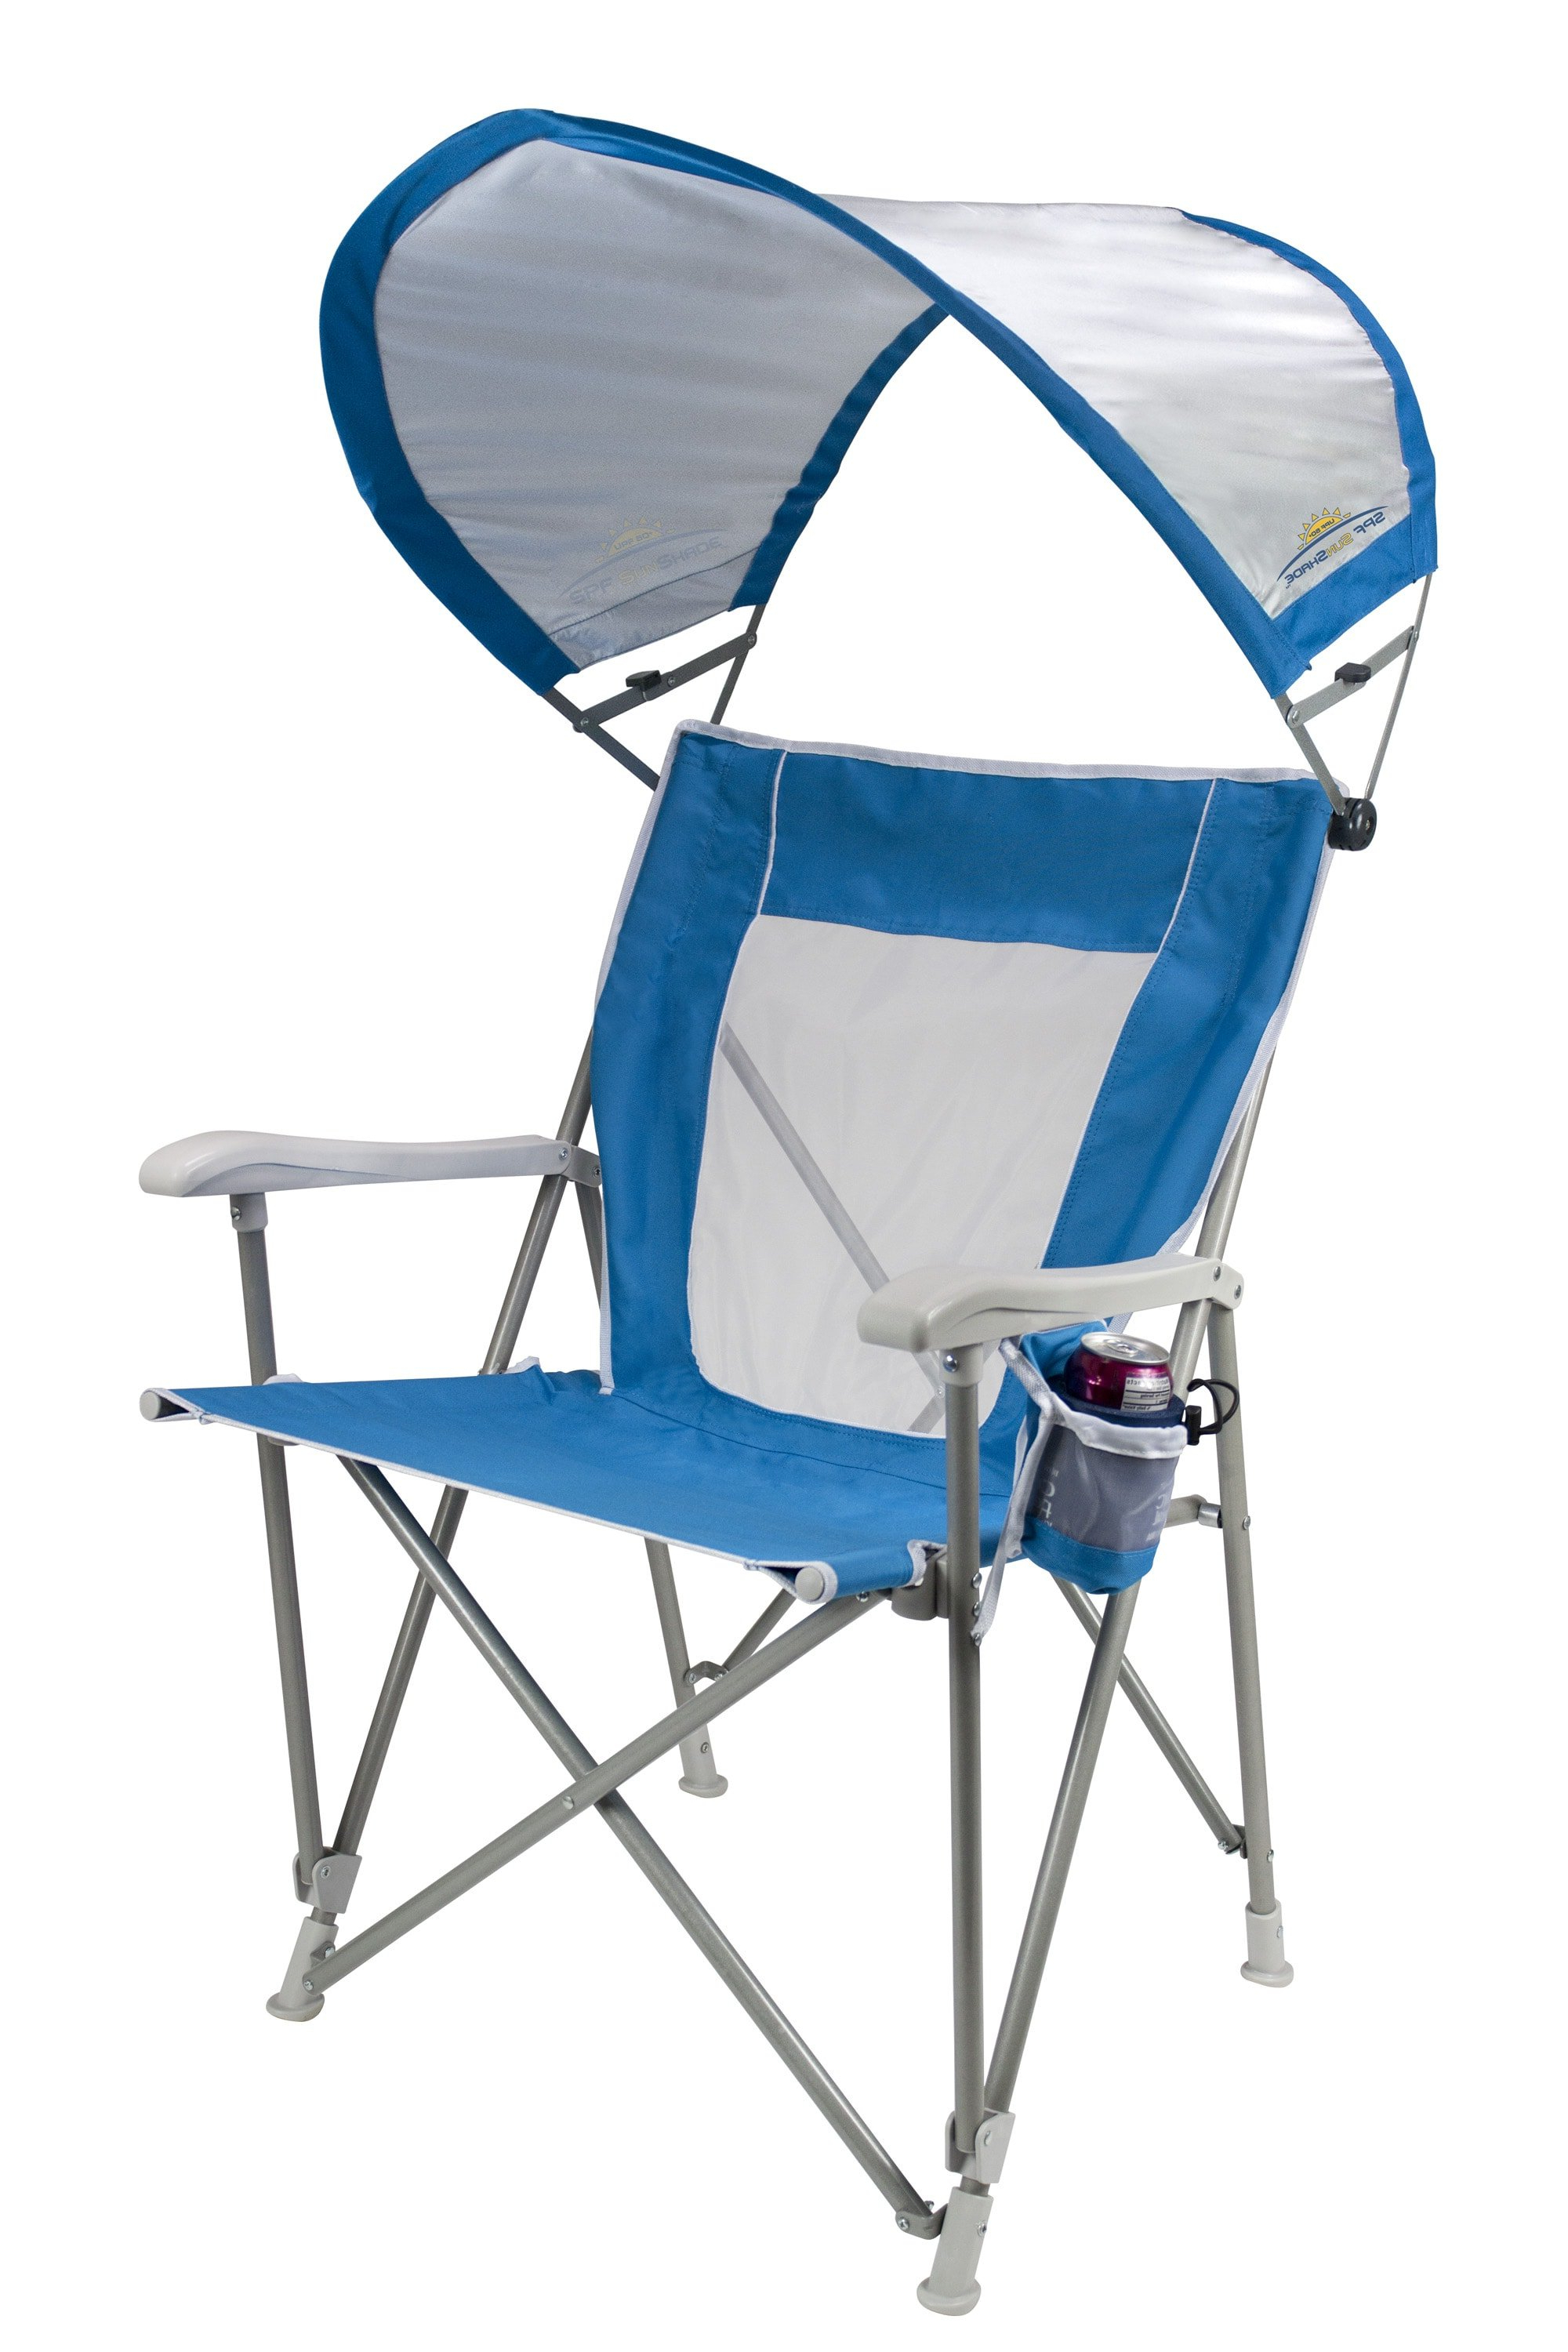 Sunshade Captain's Chair™ In Current Mesh Fabric With Steel Frame Chairs With Canopy And Tray (View 15 of 25)